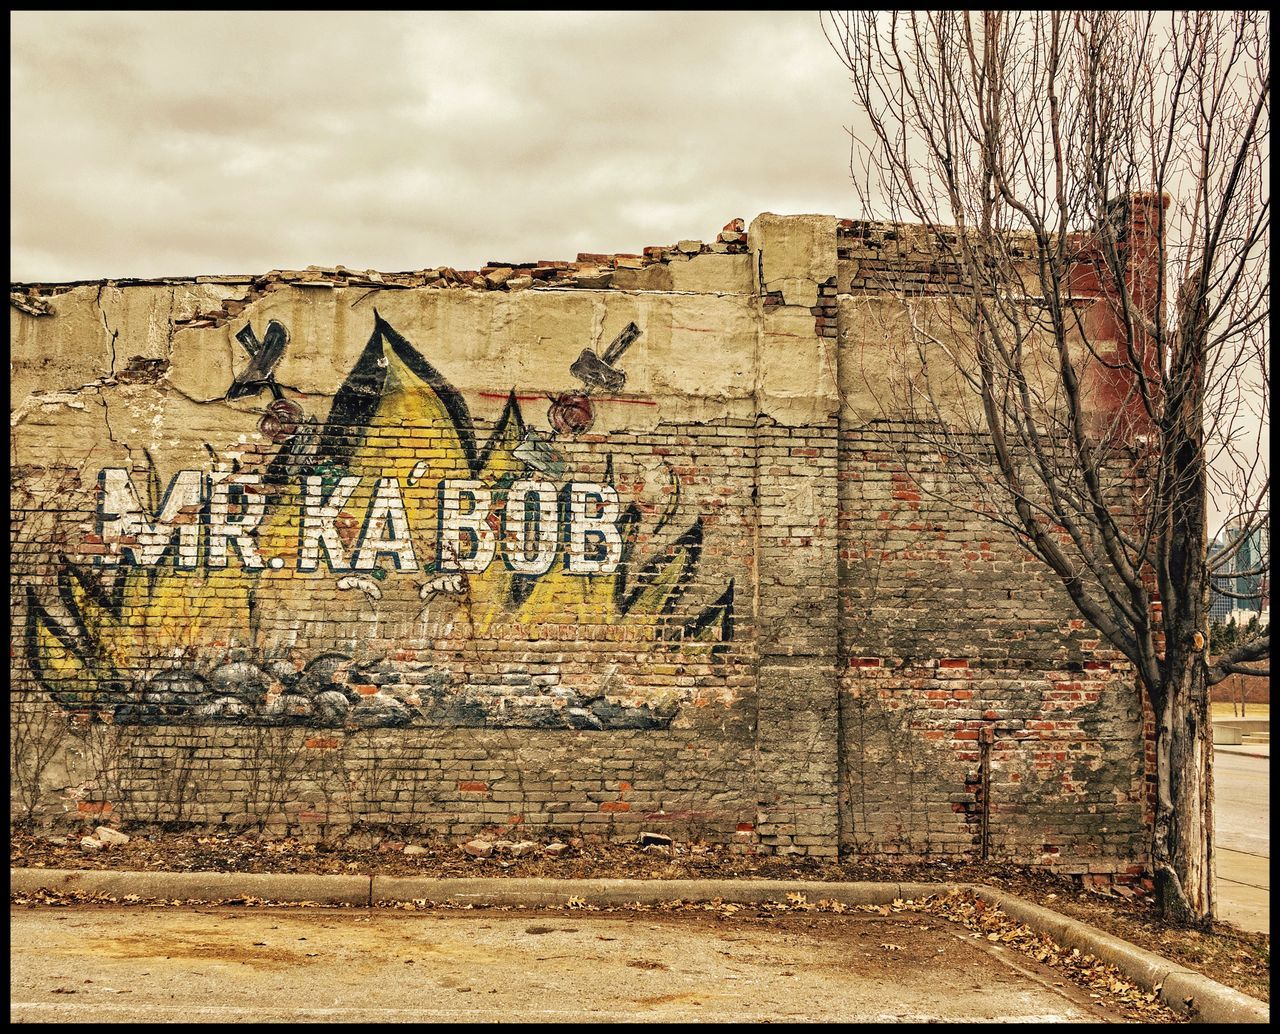 graffiti, architecture, text, built structure, no people, day, outdoors, building exterior, sky, city, tree, close-up